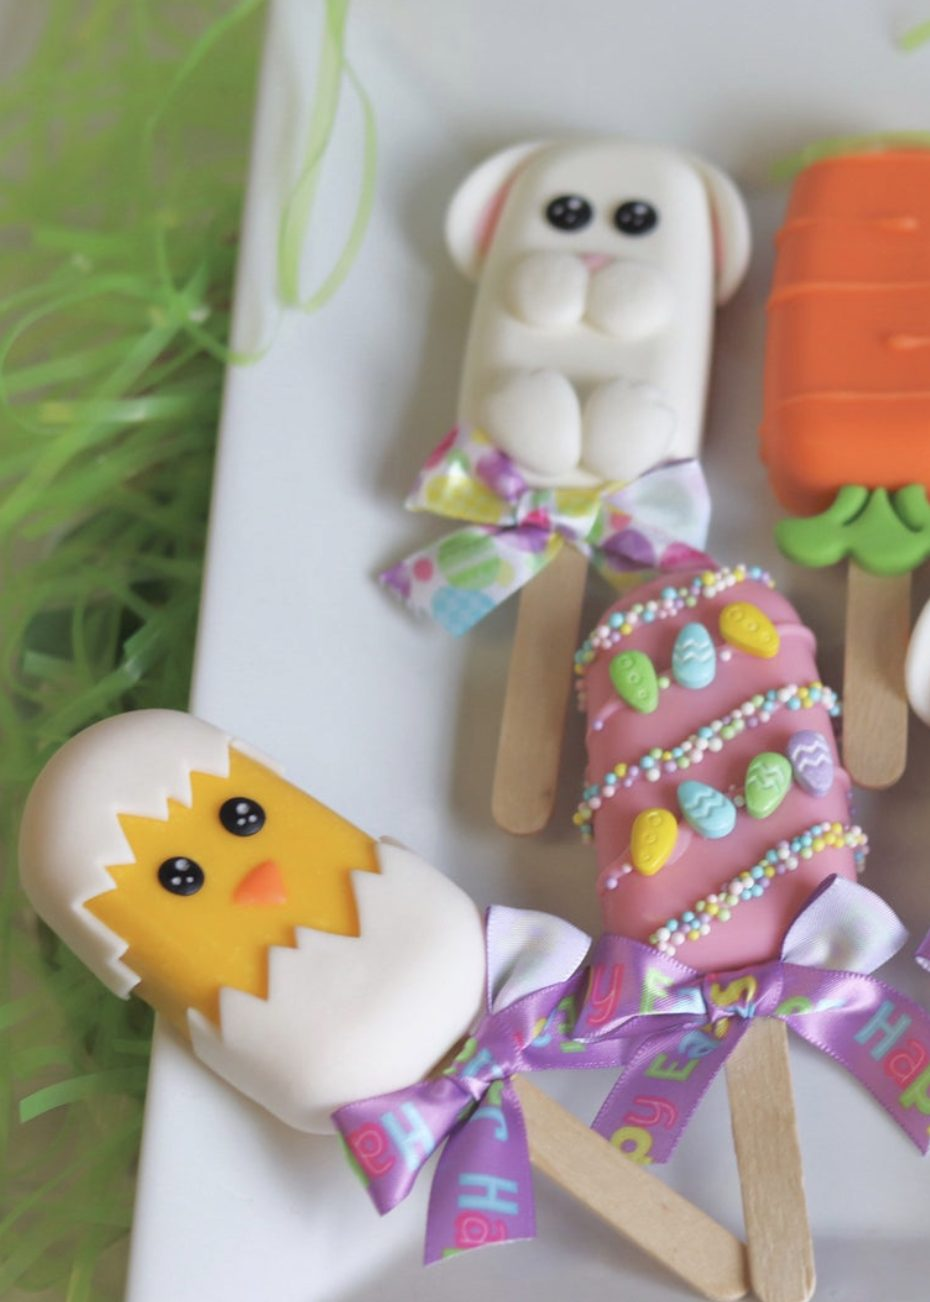 Cute Easter Cakesicles With Bunny and Chick